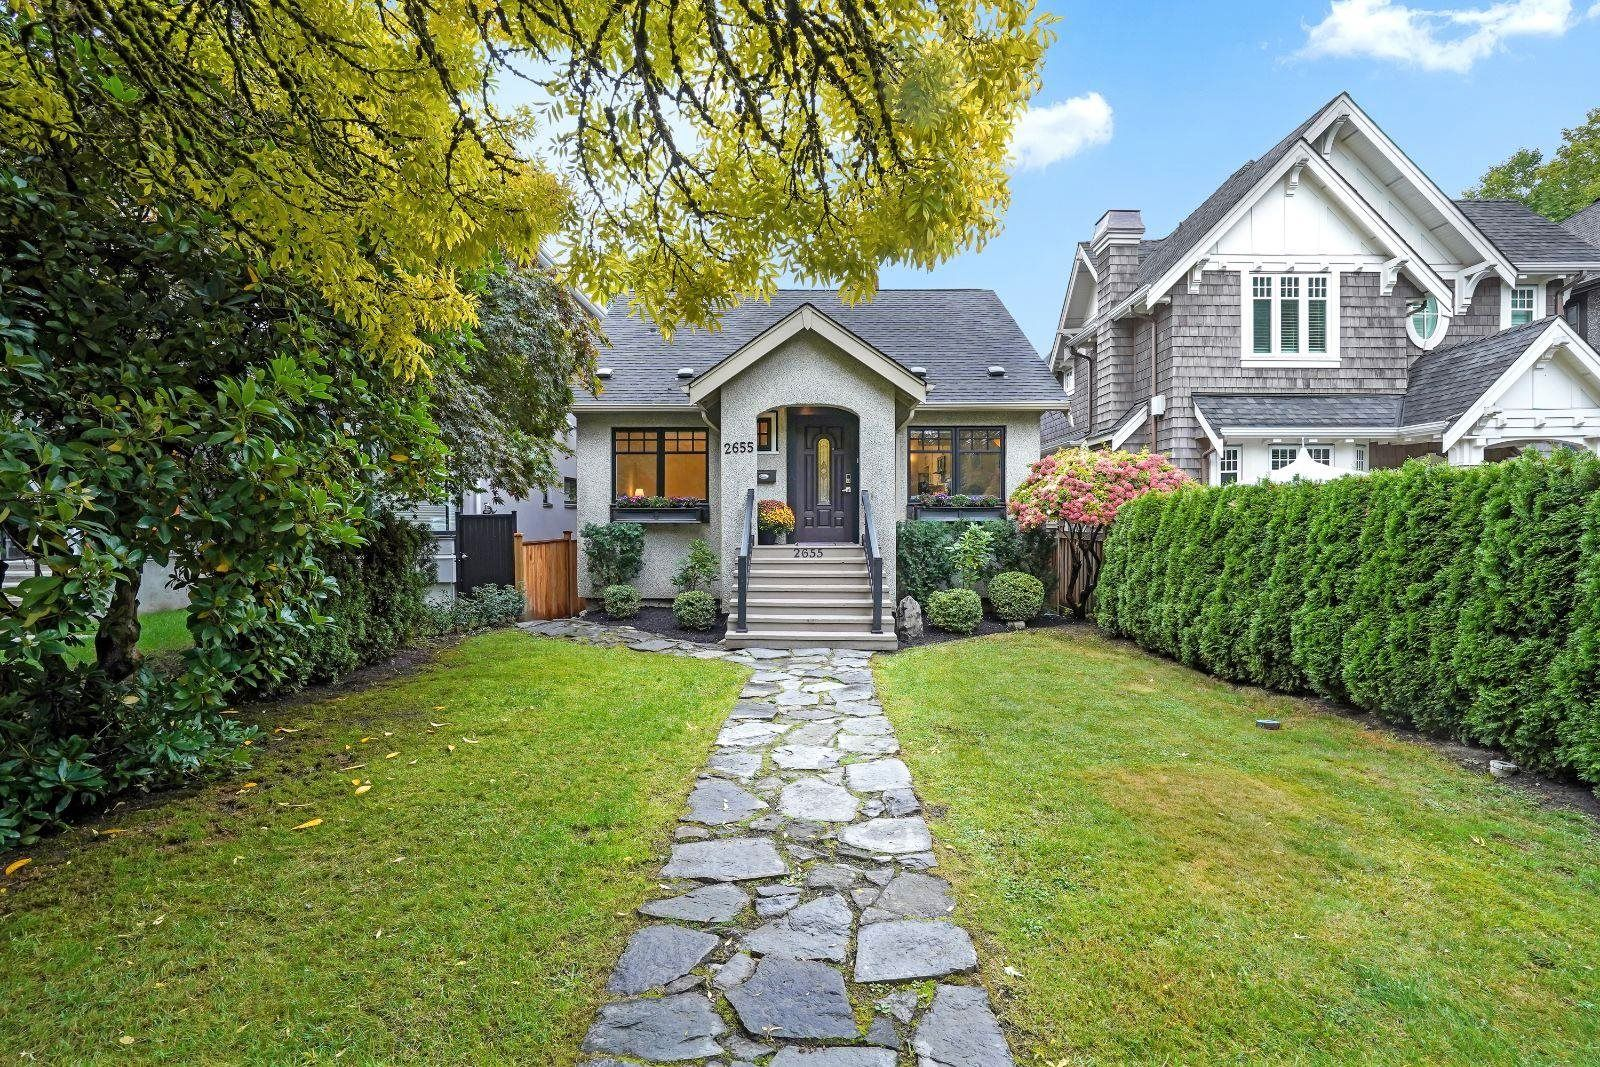 Main Photo: 2655 WATERLOO Street in Vancouver: Kitsilano House for sale (Vancouver West)  : MLS®# R2619152